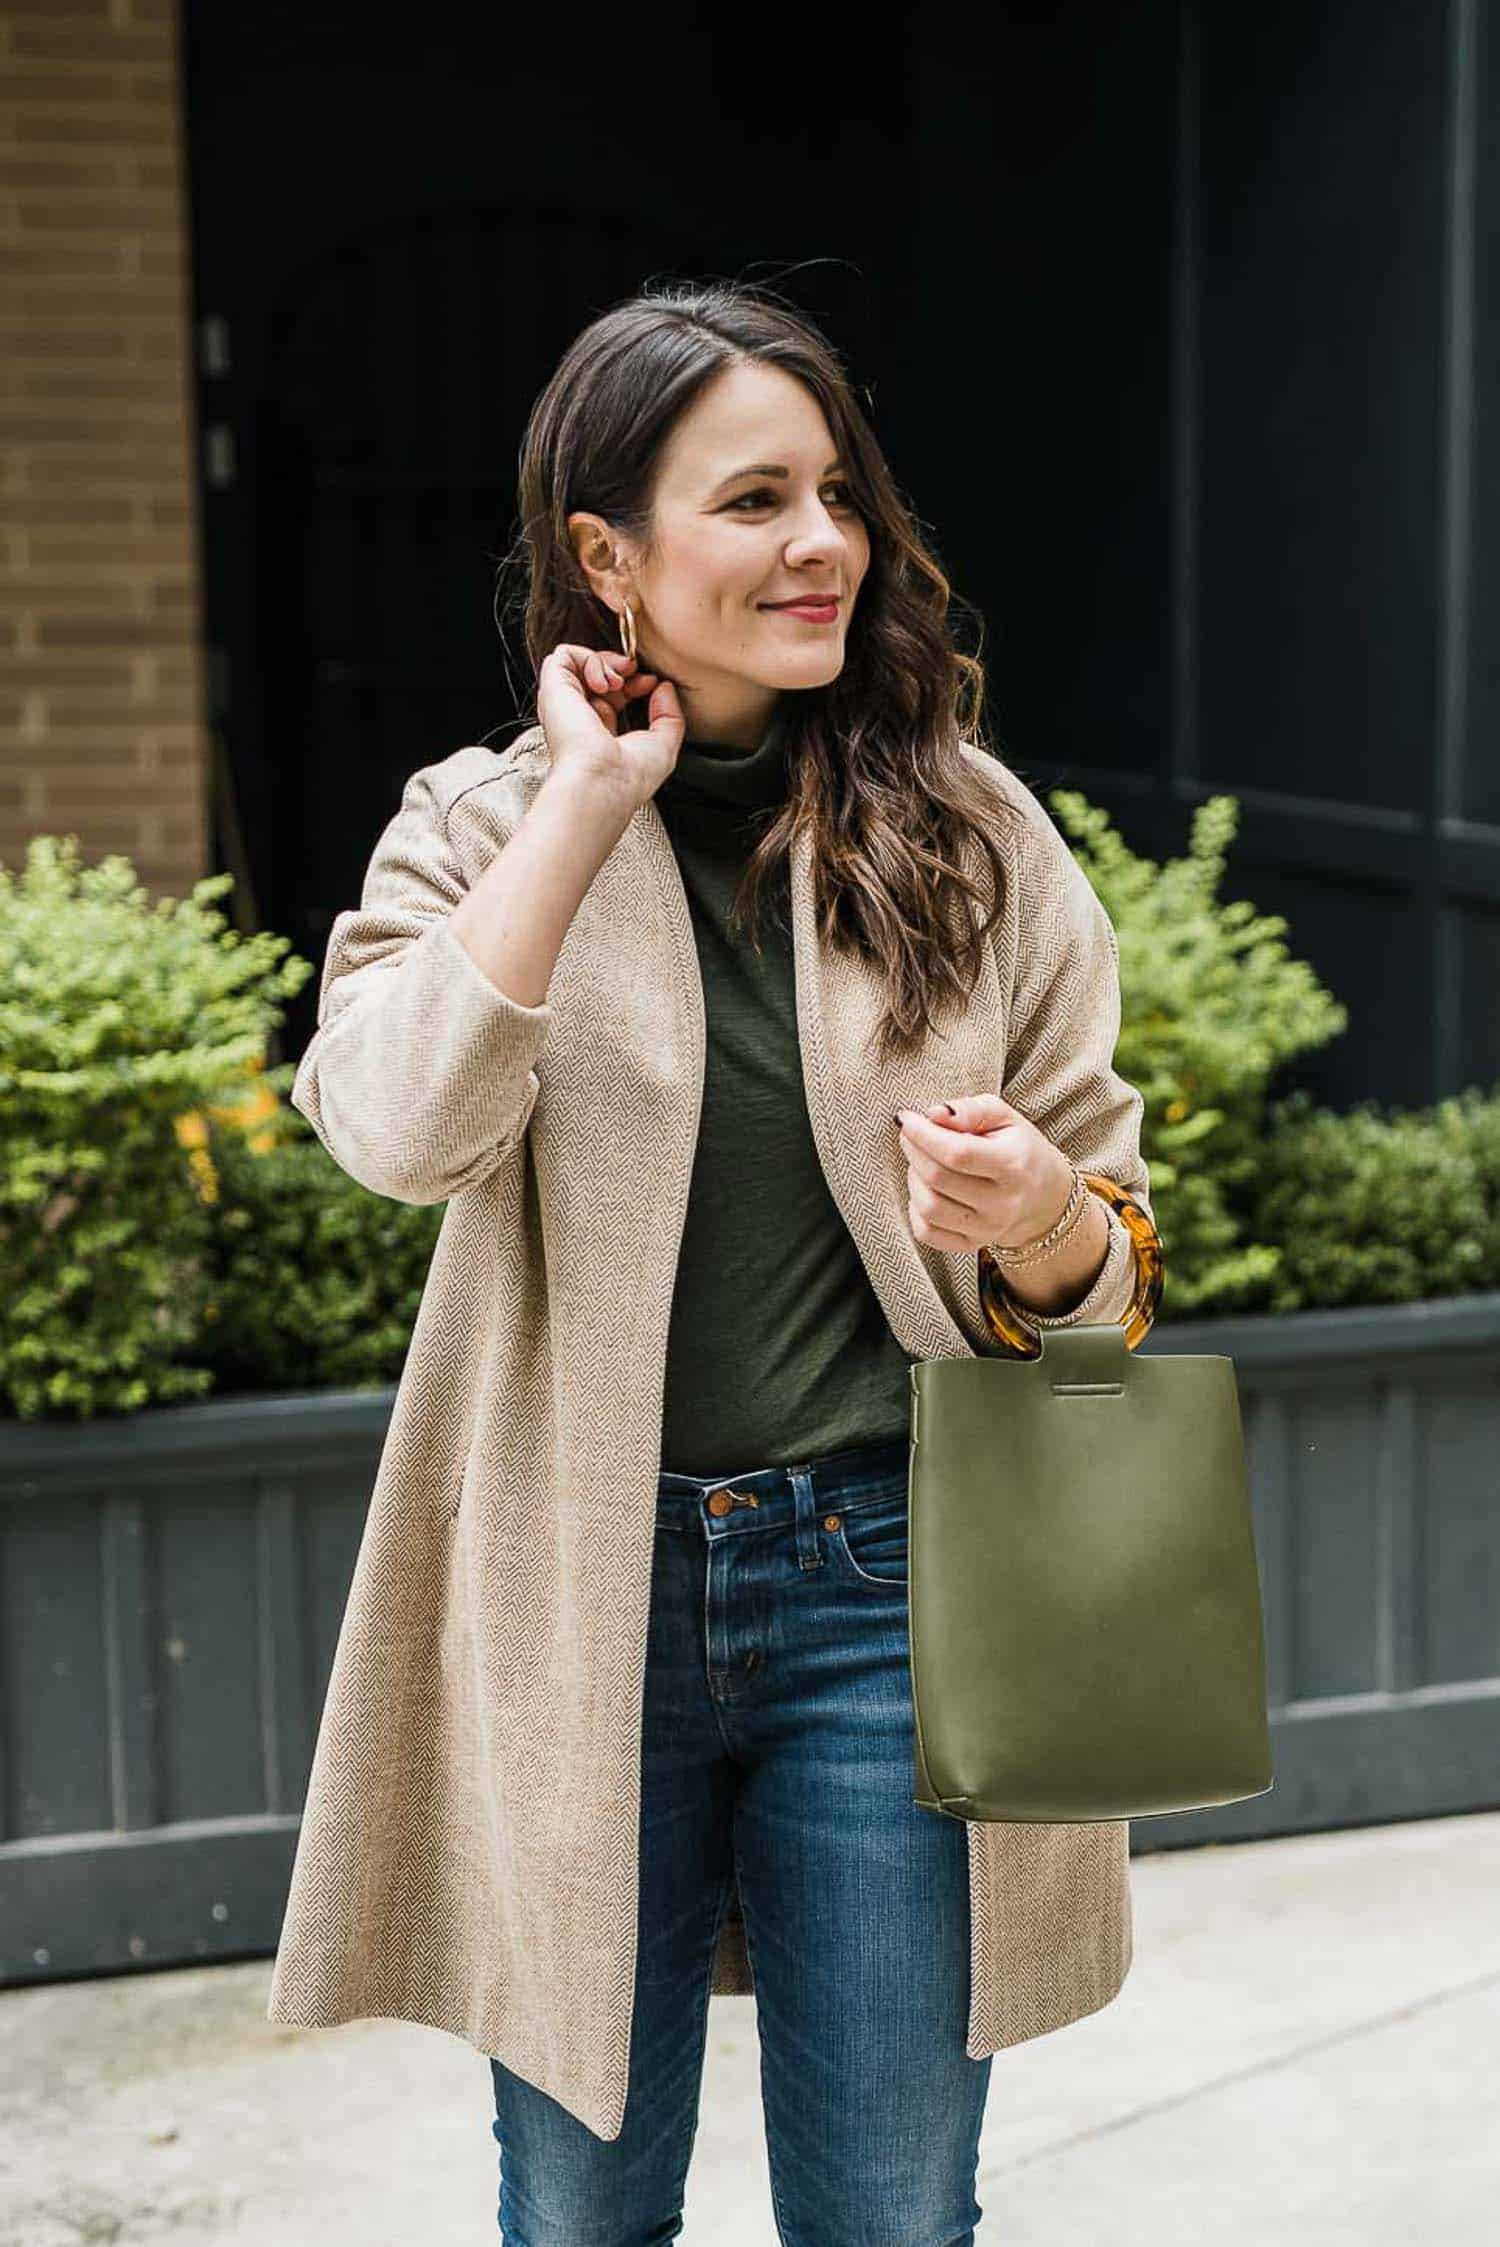 Anthropologie Bag •  Madewell Jeans • Madewell Turtleneck